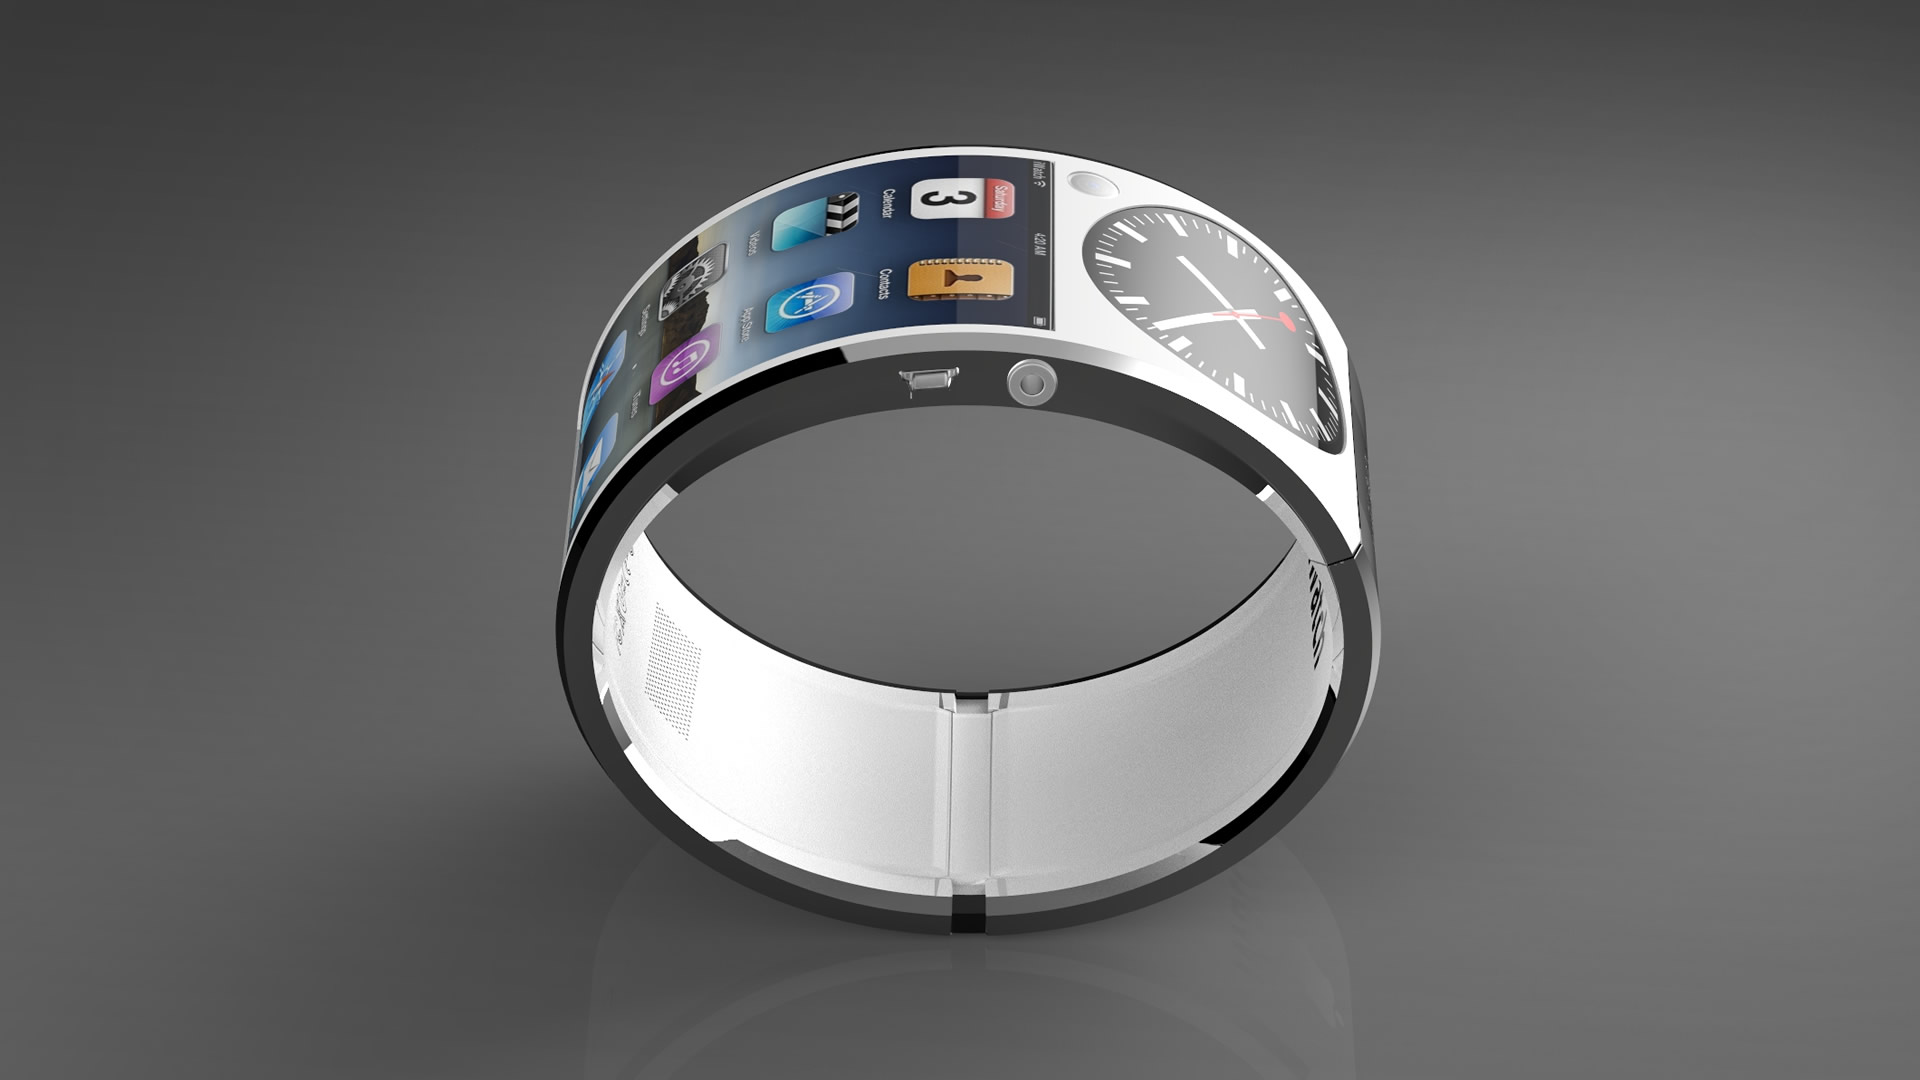 Apple iWatch Concept Design HD Wallpaper